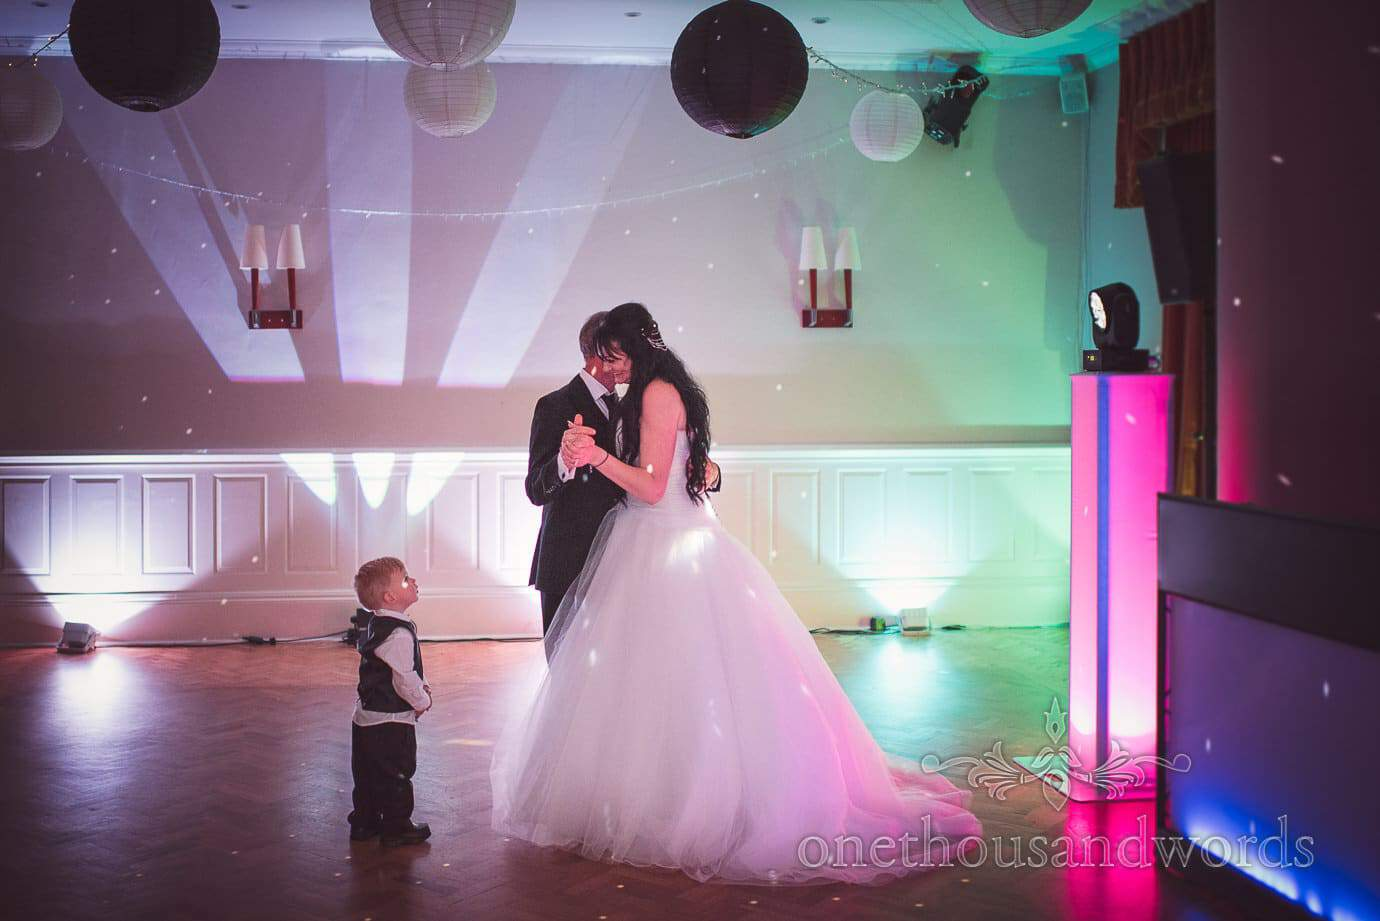 Bride's son curiously looks on during father daughter dance at black and white themed wedding